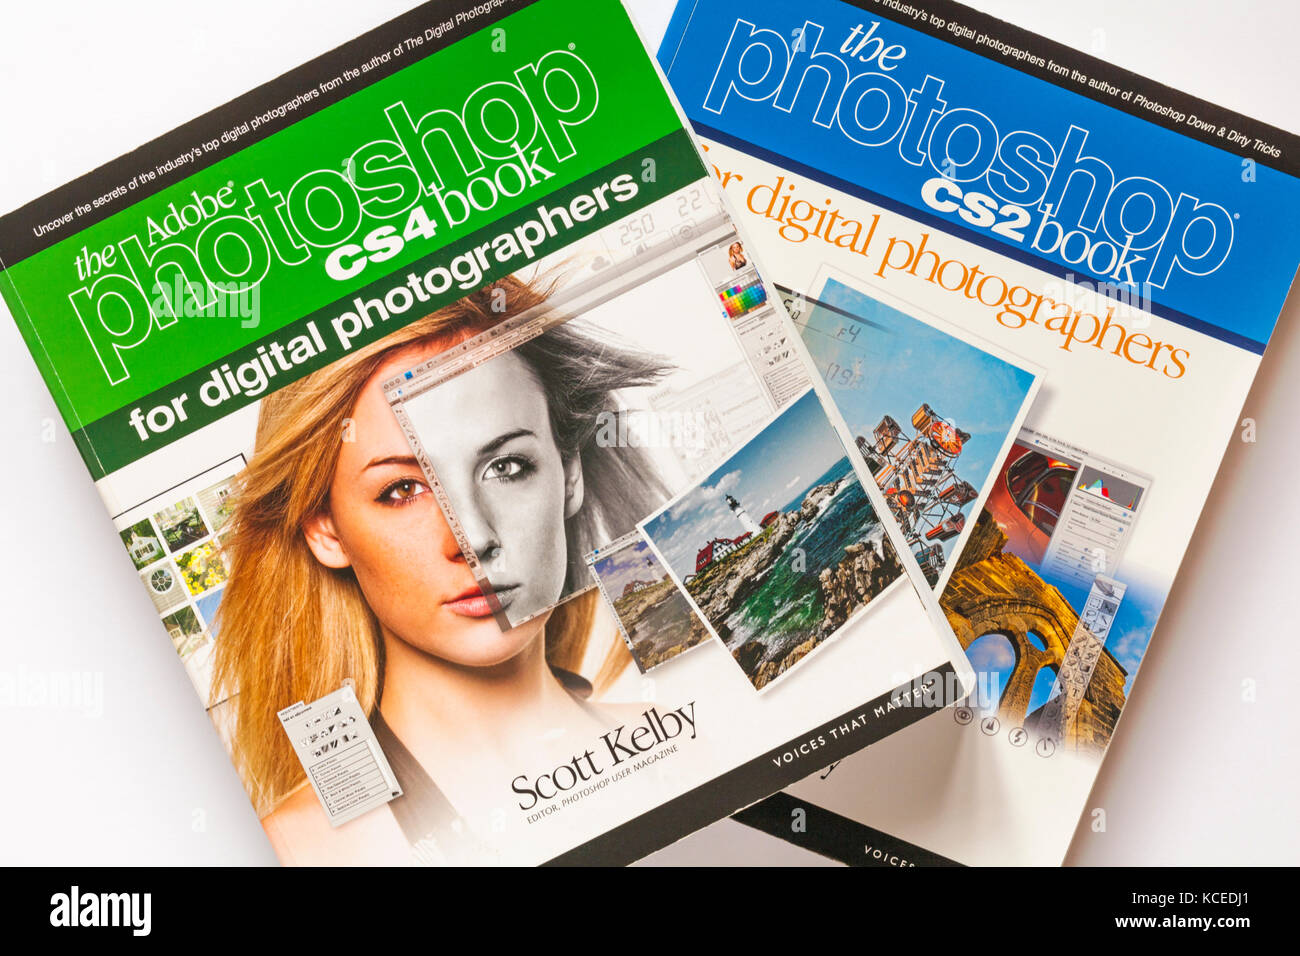 Photography books - the Adobe photoshop CS4 book for digital photographers and the photoshop CS2 book by Scott Kelby - Stock Image